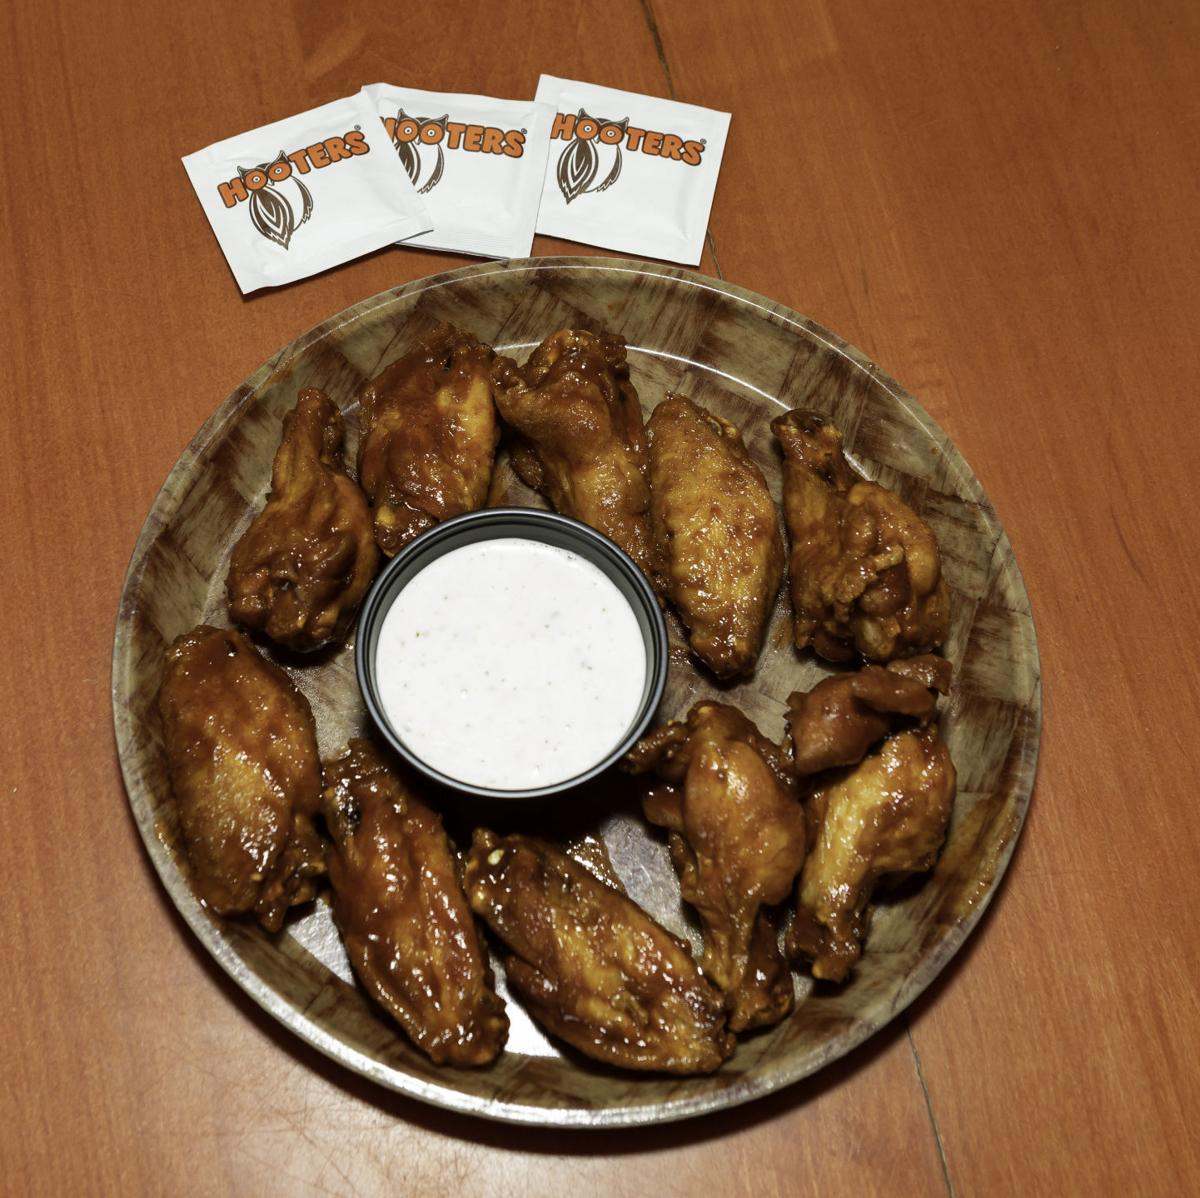 Wing wars IV Hooters